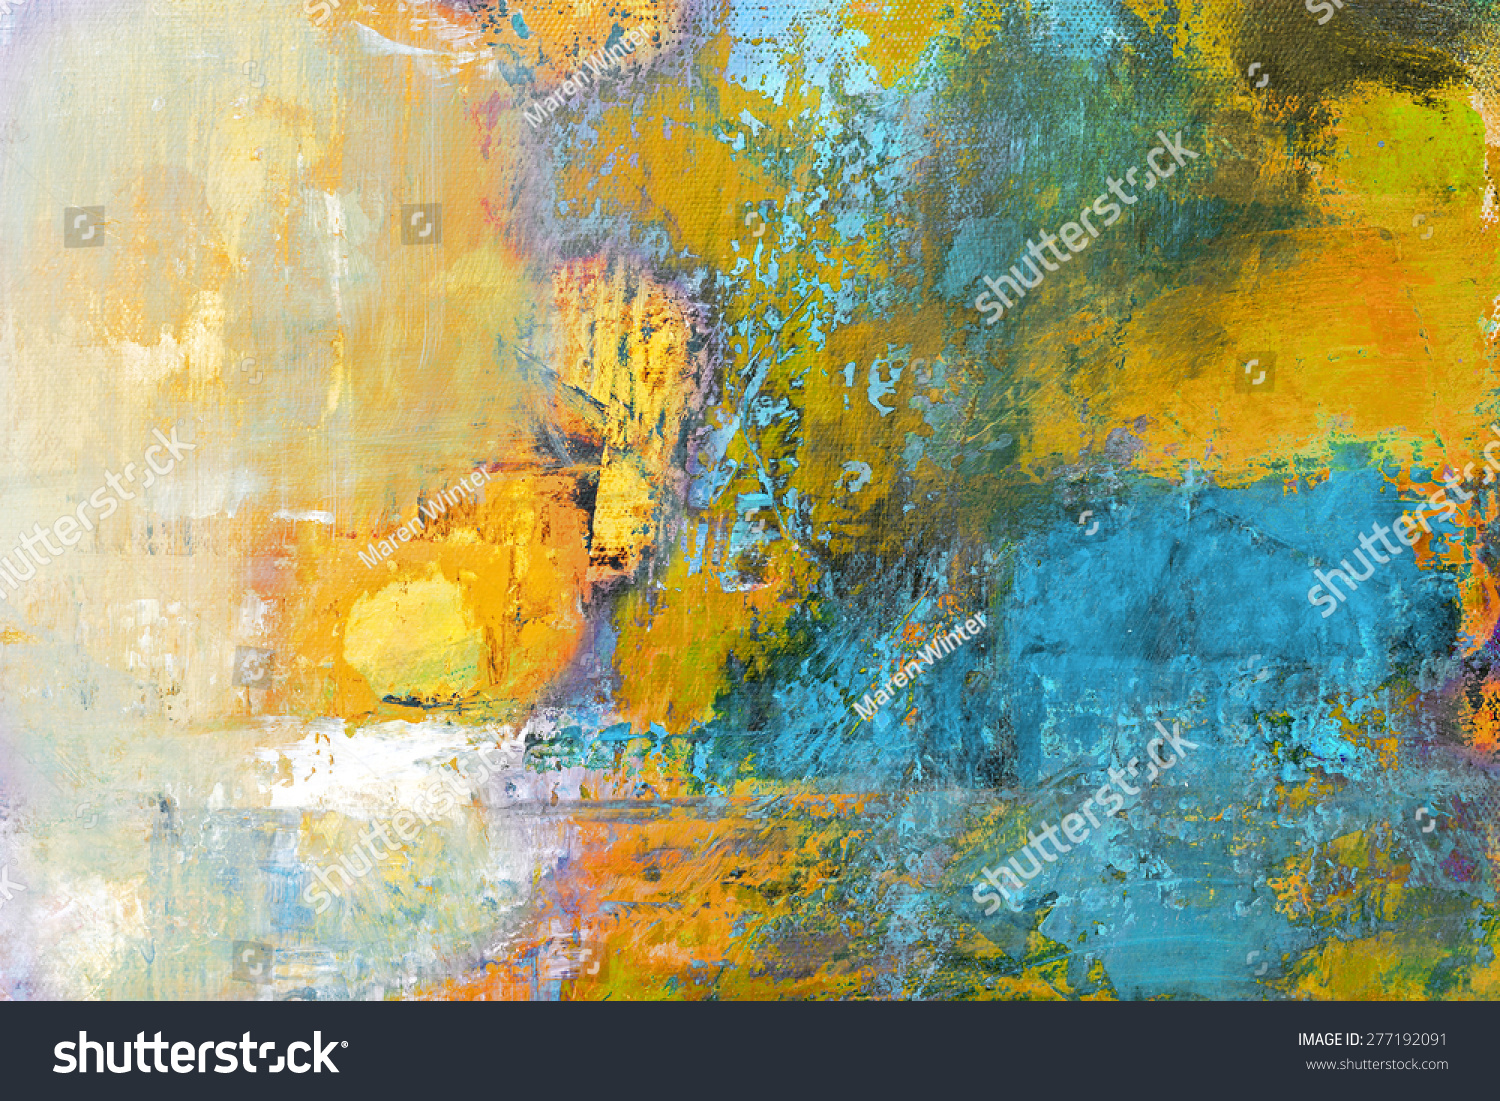 Background Abstract Sport Volleyball Blue Yellow Ball: Abstract Original Painting On Canvas Sun Stock